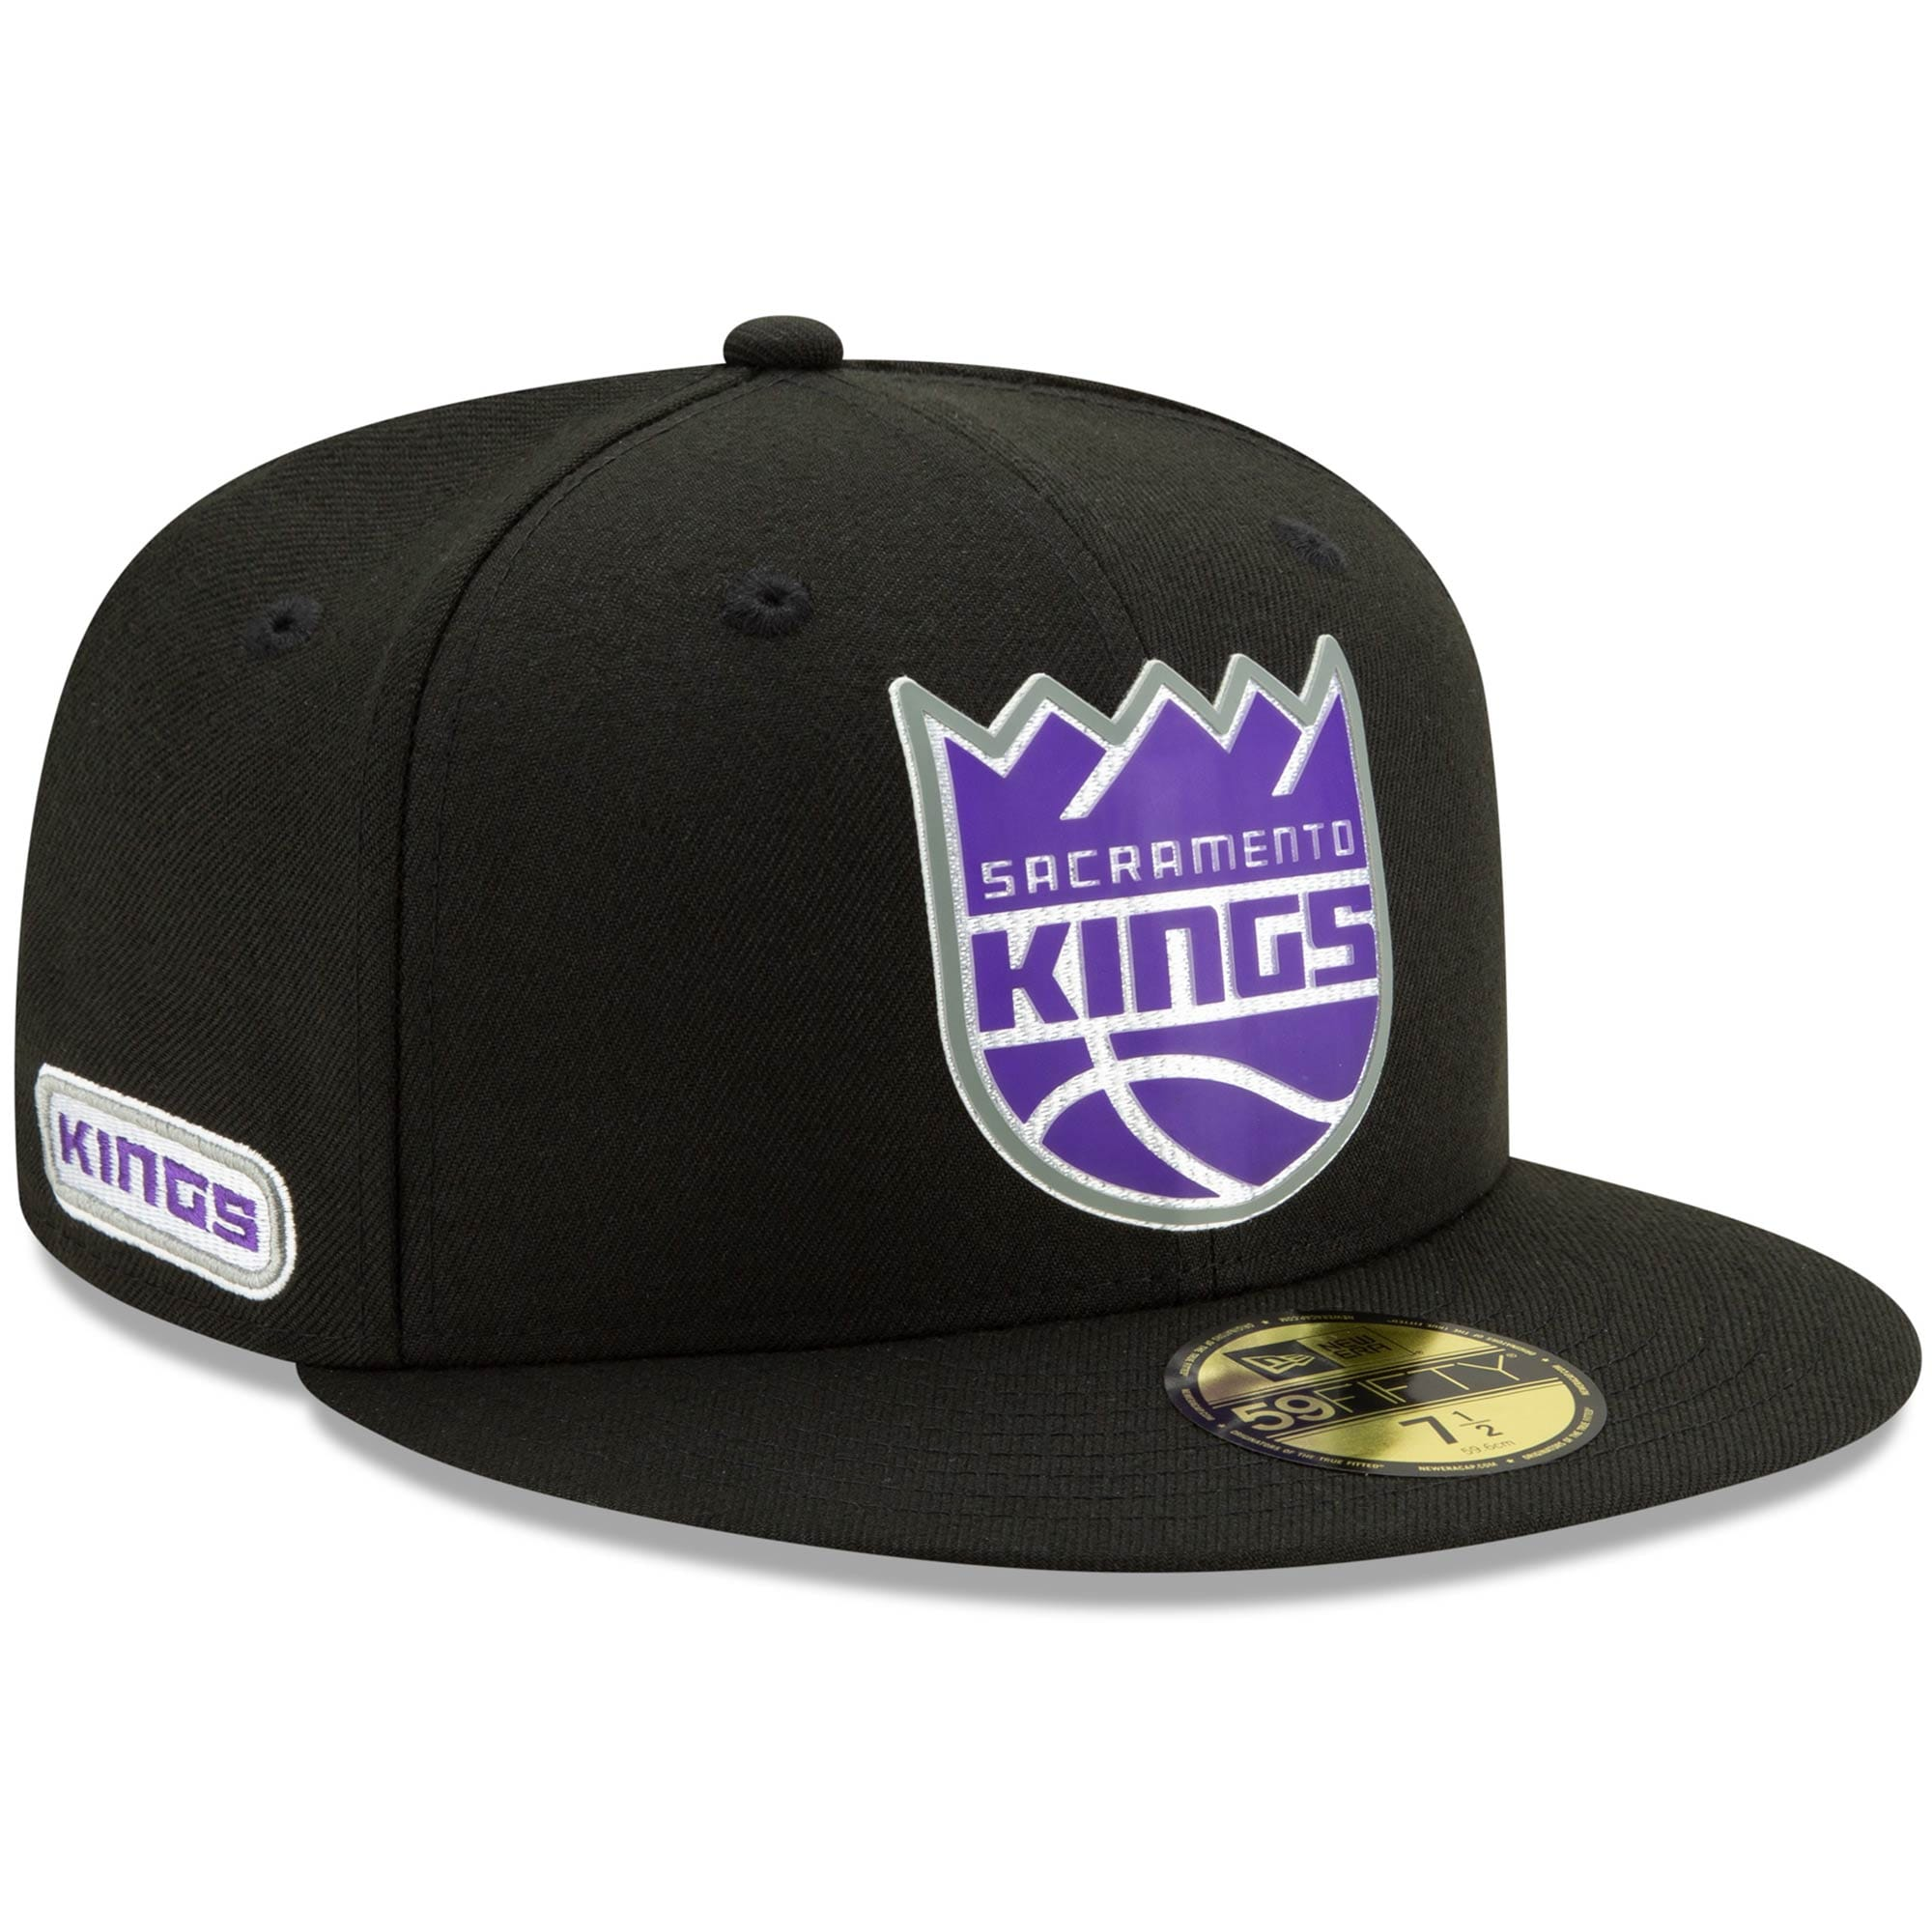 Sacramento Kings New Era Official Back Half 59FIFTY Fitted Hat - Black